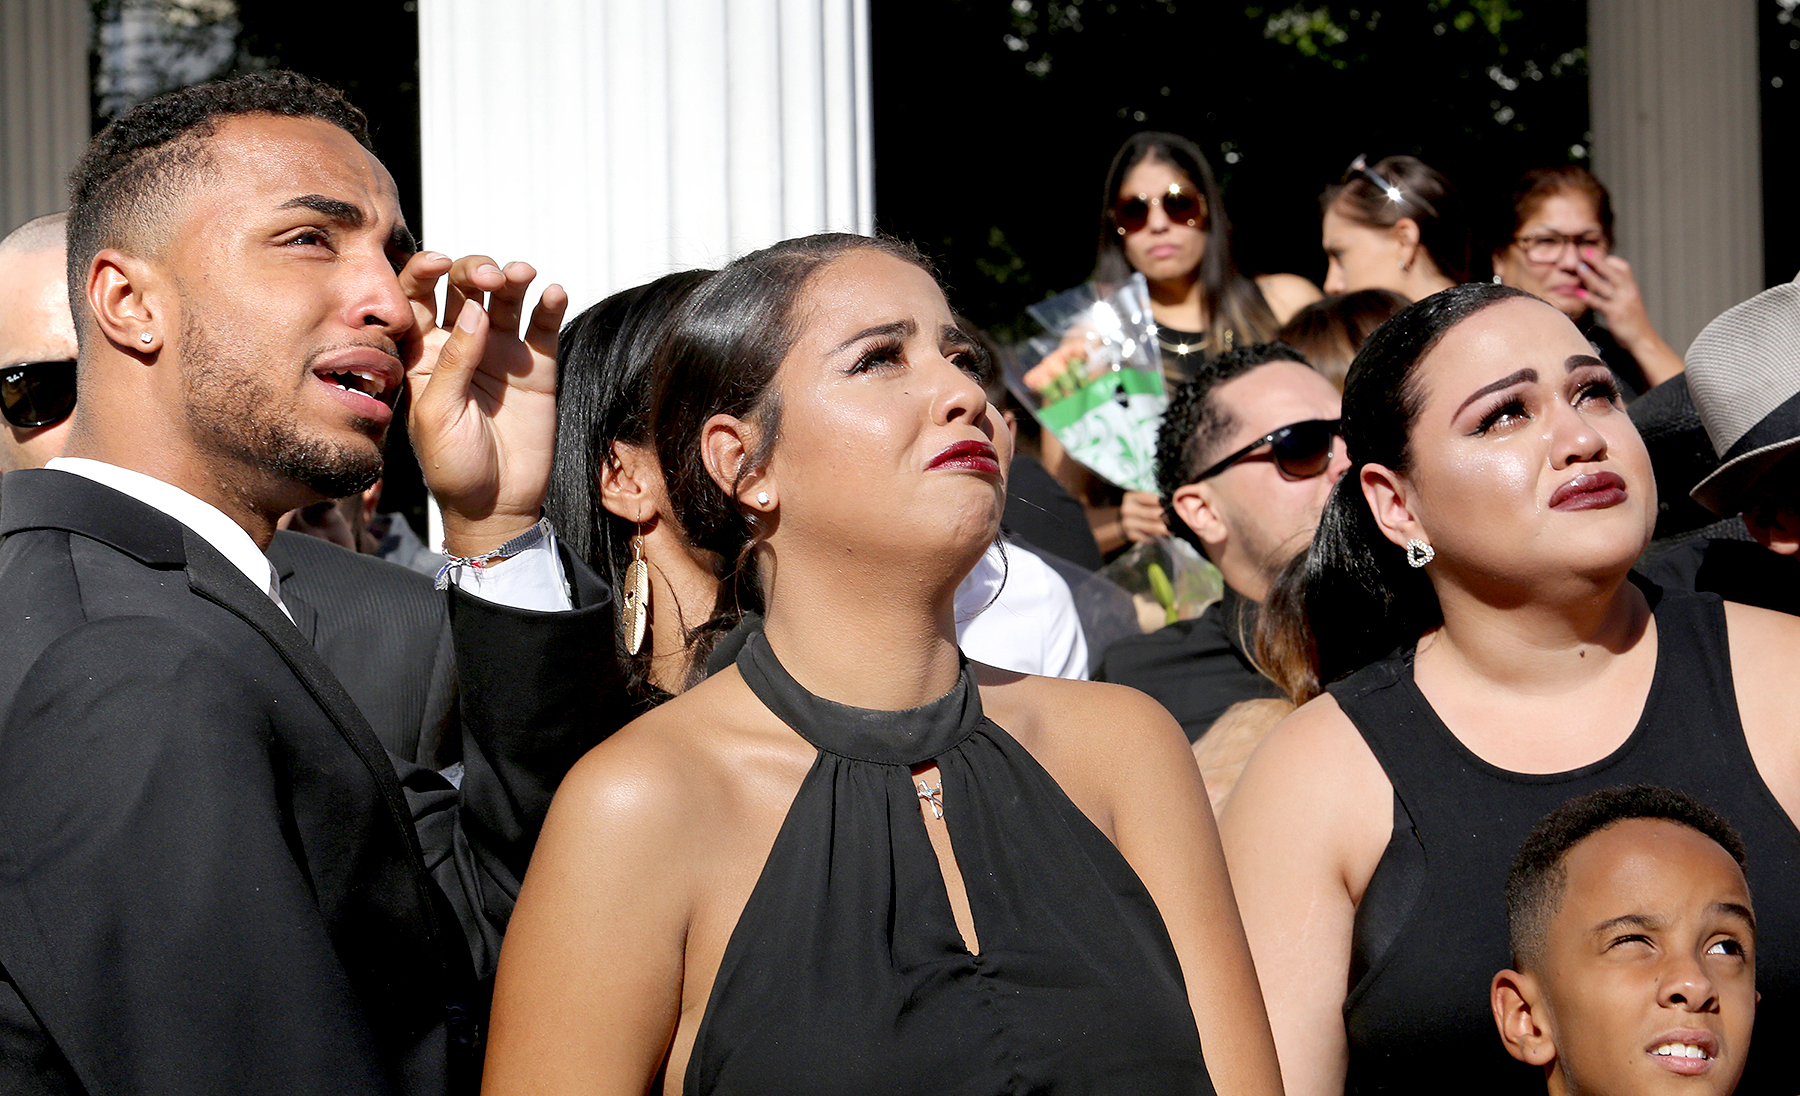 Isaiah Henderson, Tatiana Harris, center, and Khiana Marshall watch 49 white balloons after they were released during the funeral for their mother, Pulse shooting victim Brenda Lee Marquez McCool, at First United Methodist Church in Orlando, Fla., Monday, June 20, 2016.